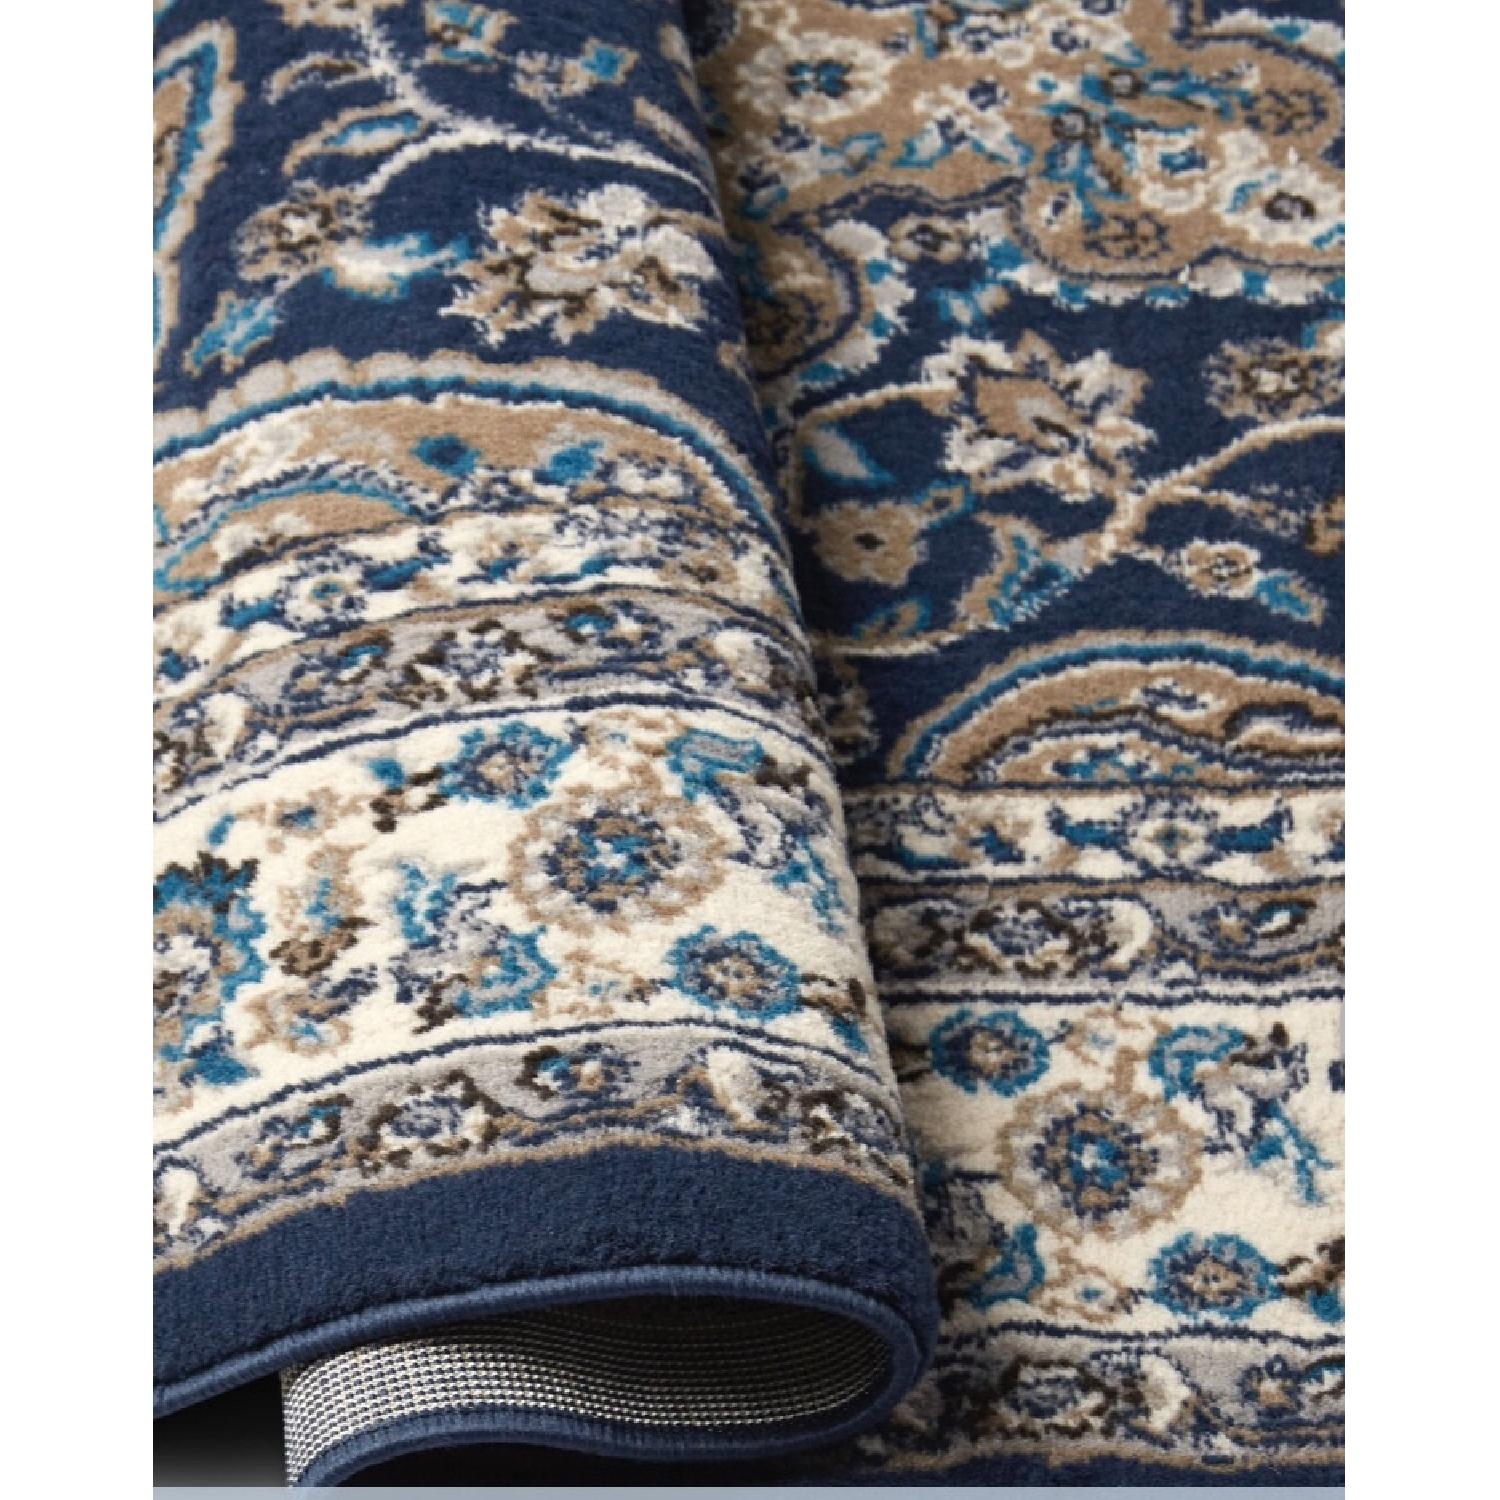 Charlton Home Arend Blue/Ivory Area Rug - image-2